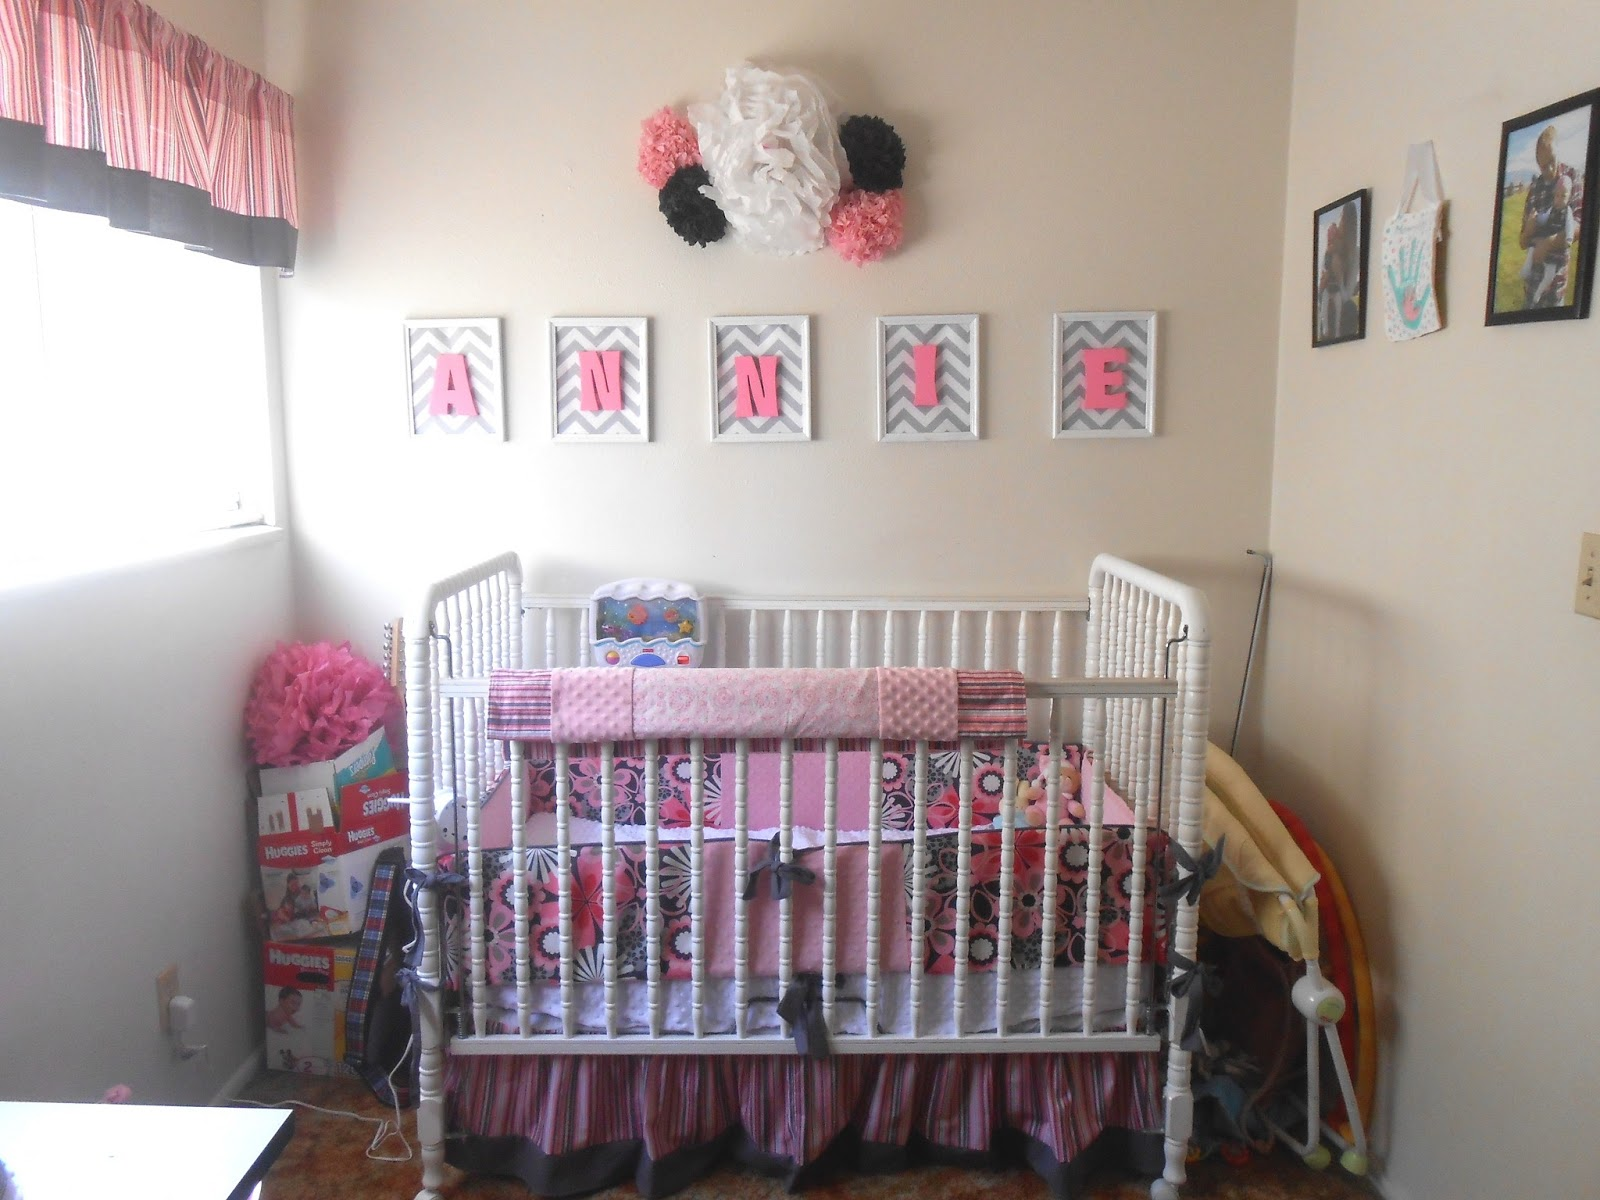 Baby Name Wall Art how to make your child's room pop,putting wooden letters in